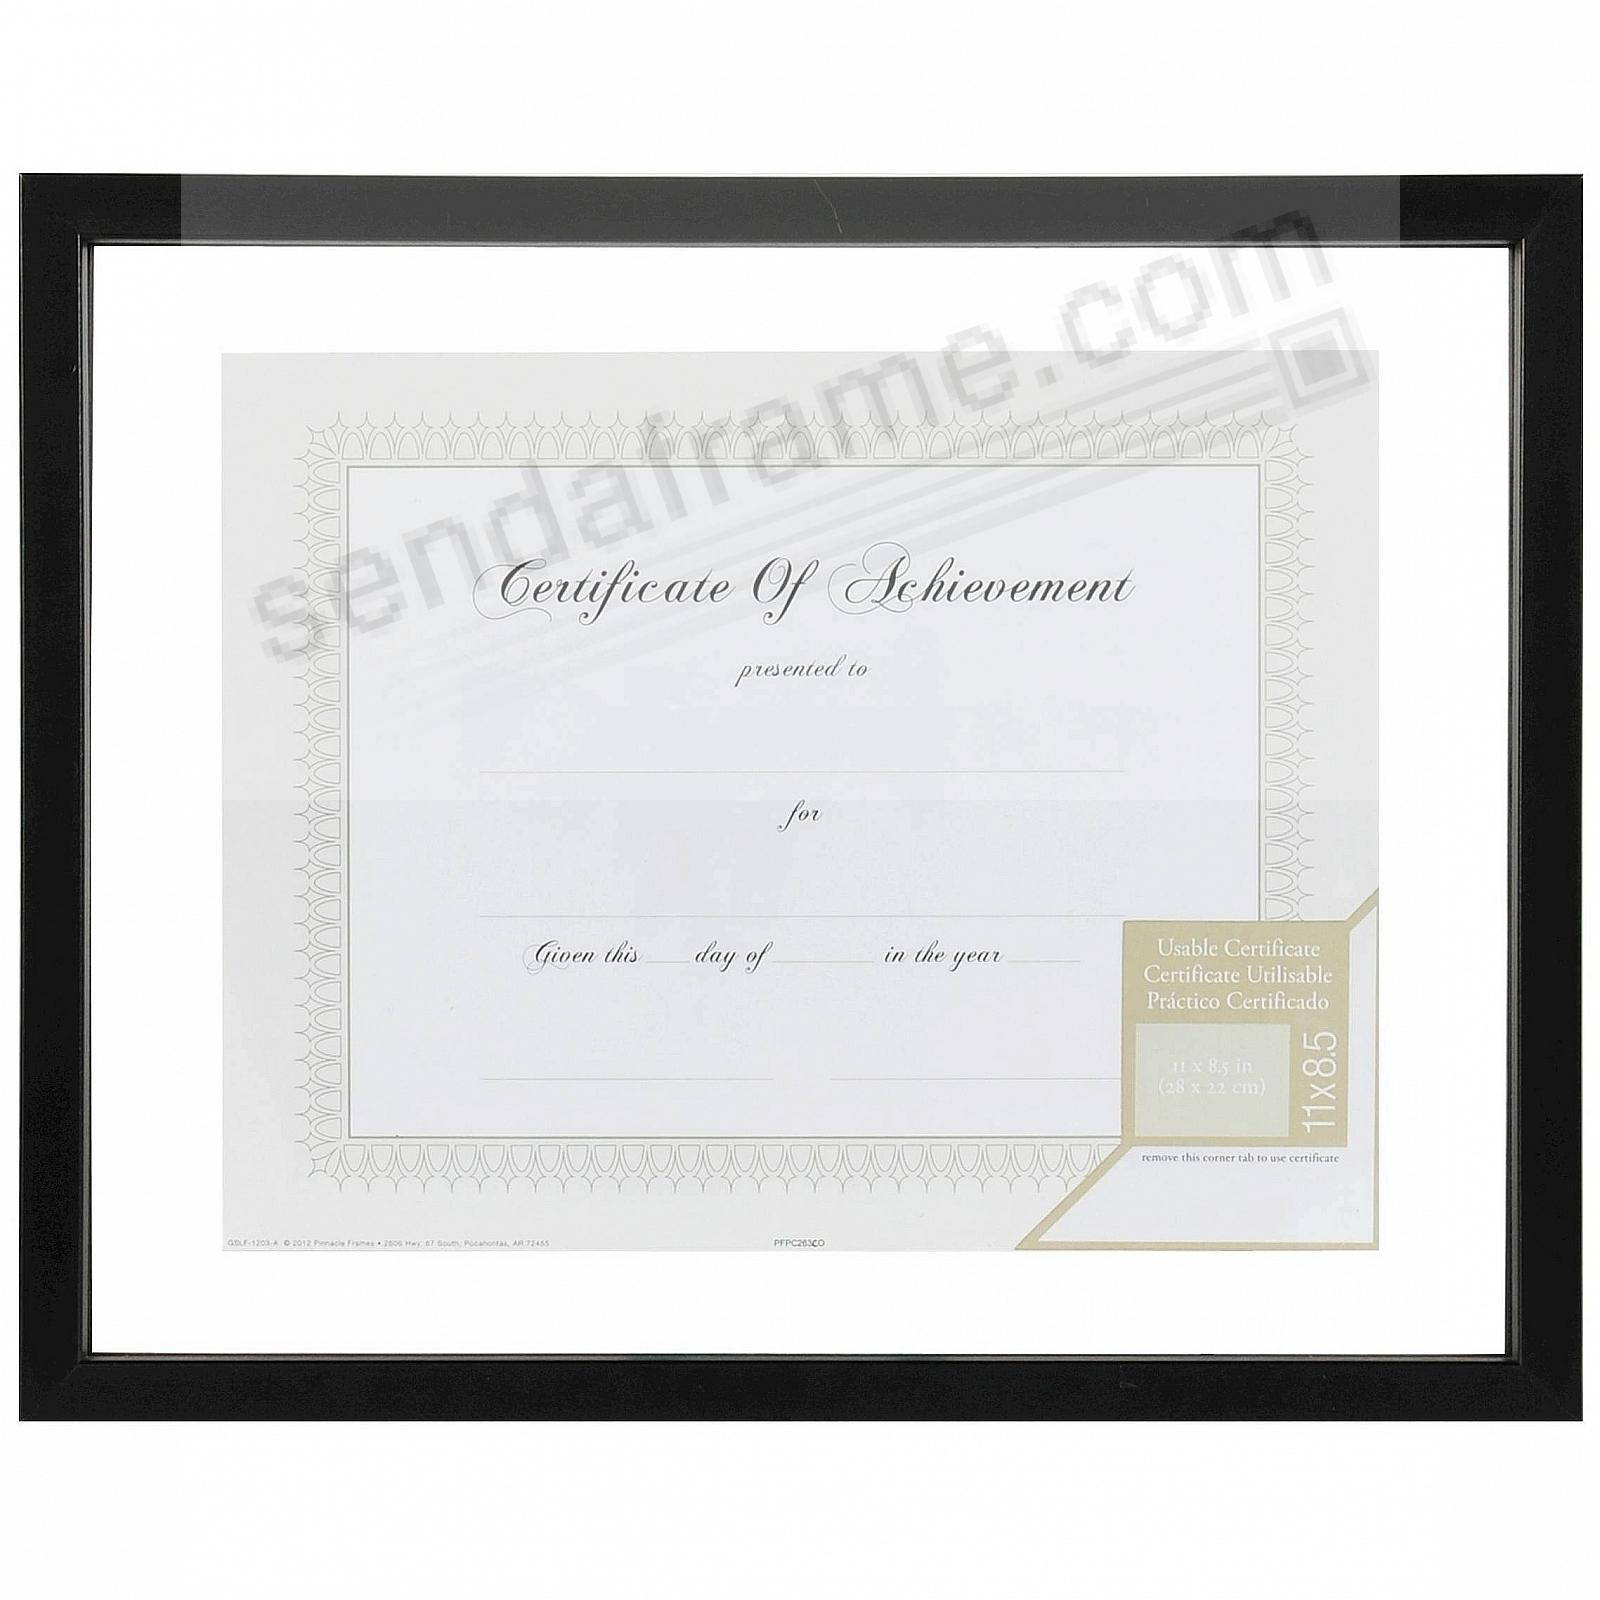 GLASS FLOAT 11x14/8½x11 frame by Gallery Solutions®